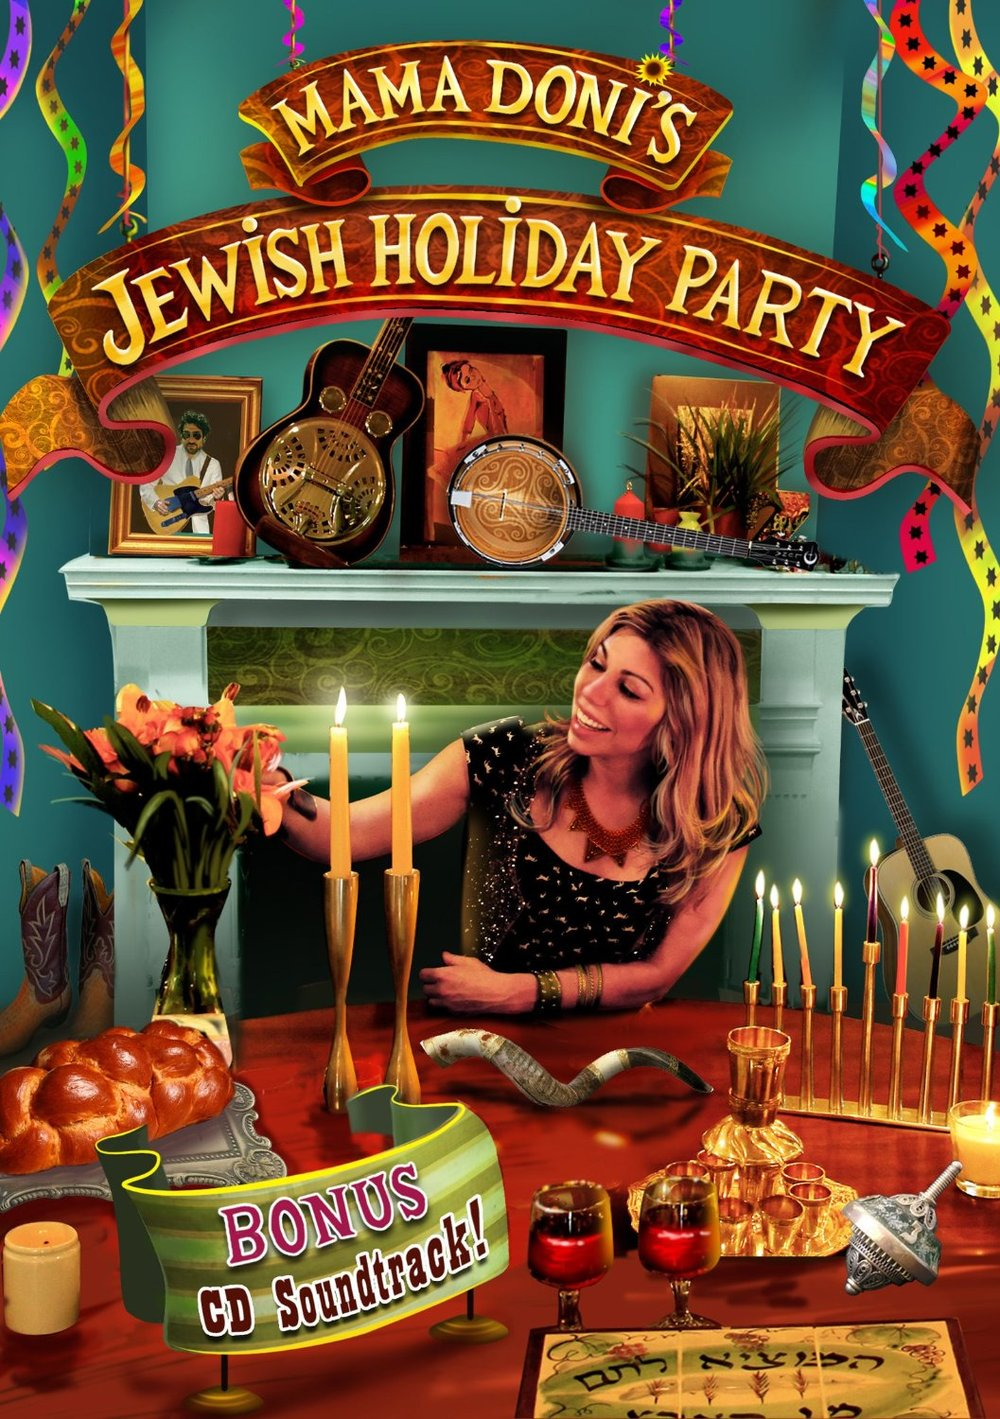 Copy of Jewish Holiday Party - DVD/CD Combo